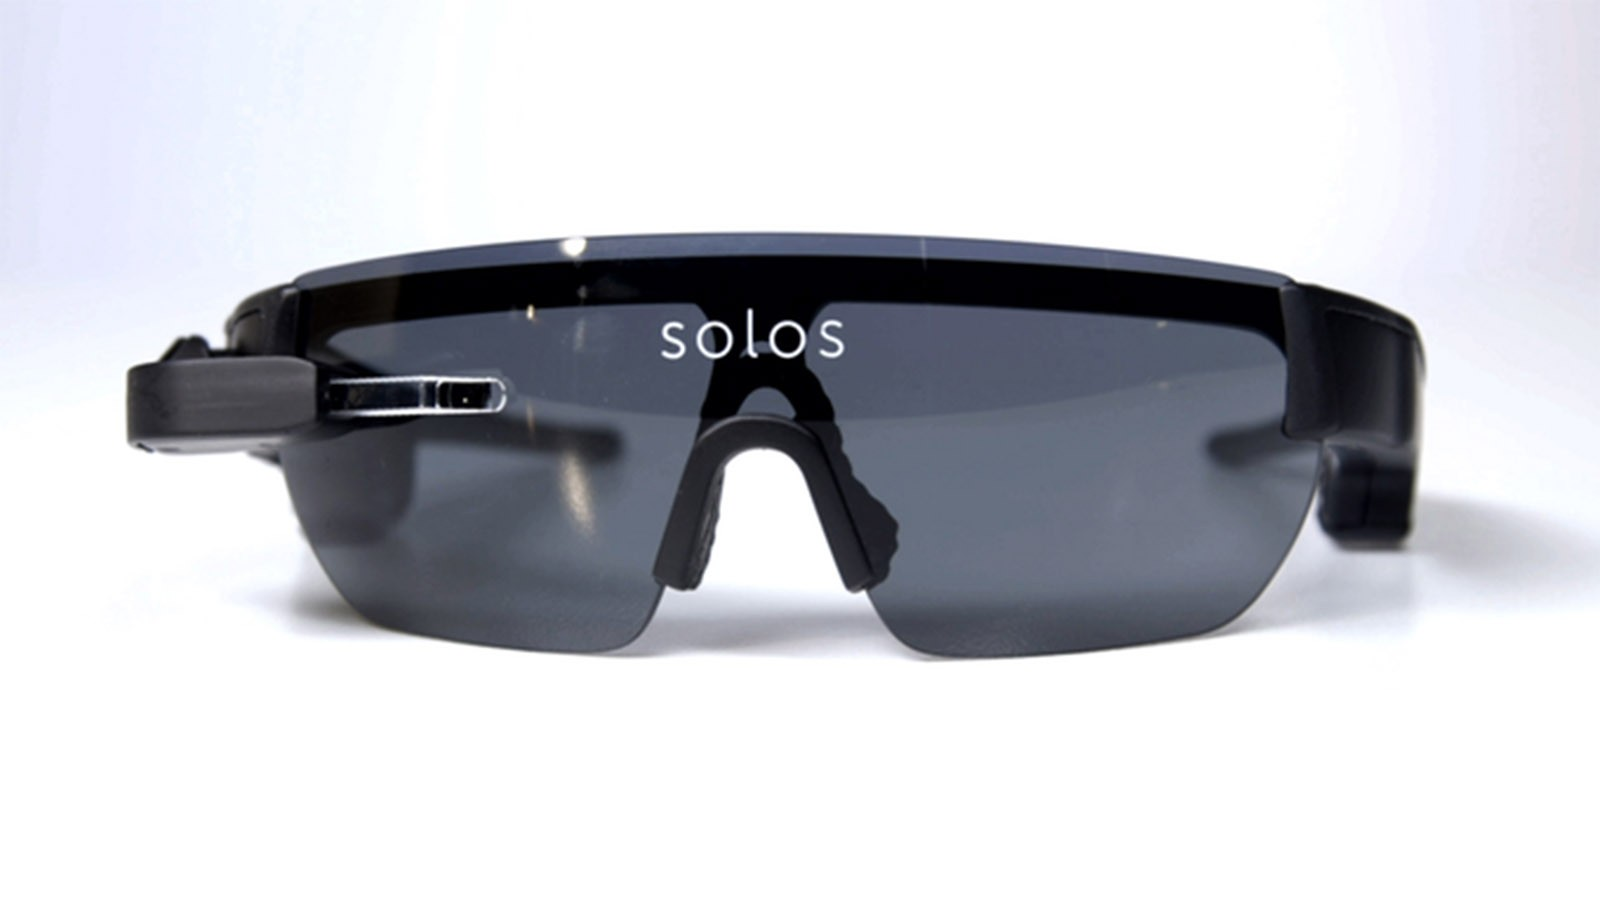 The Solos smart cycling glasses feature a micro heads-up display